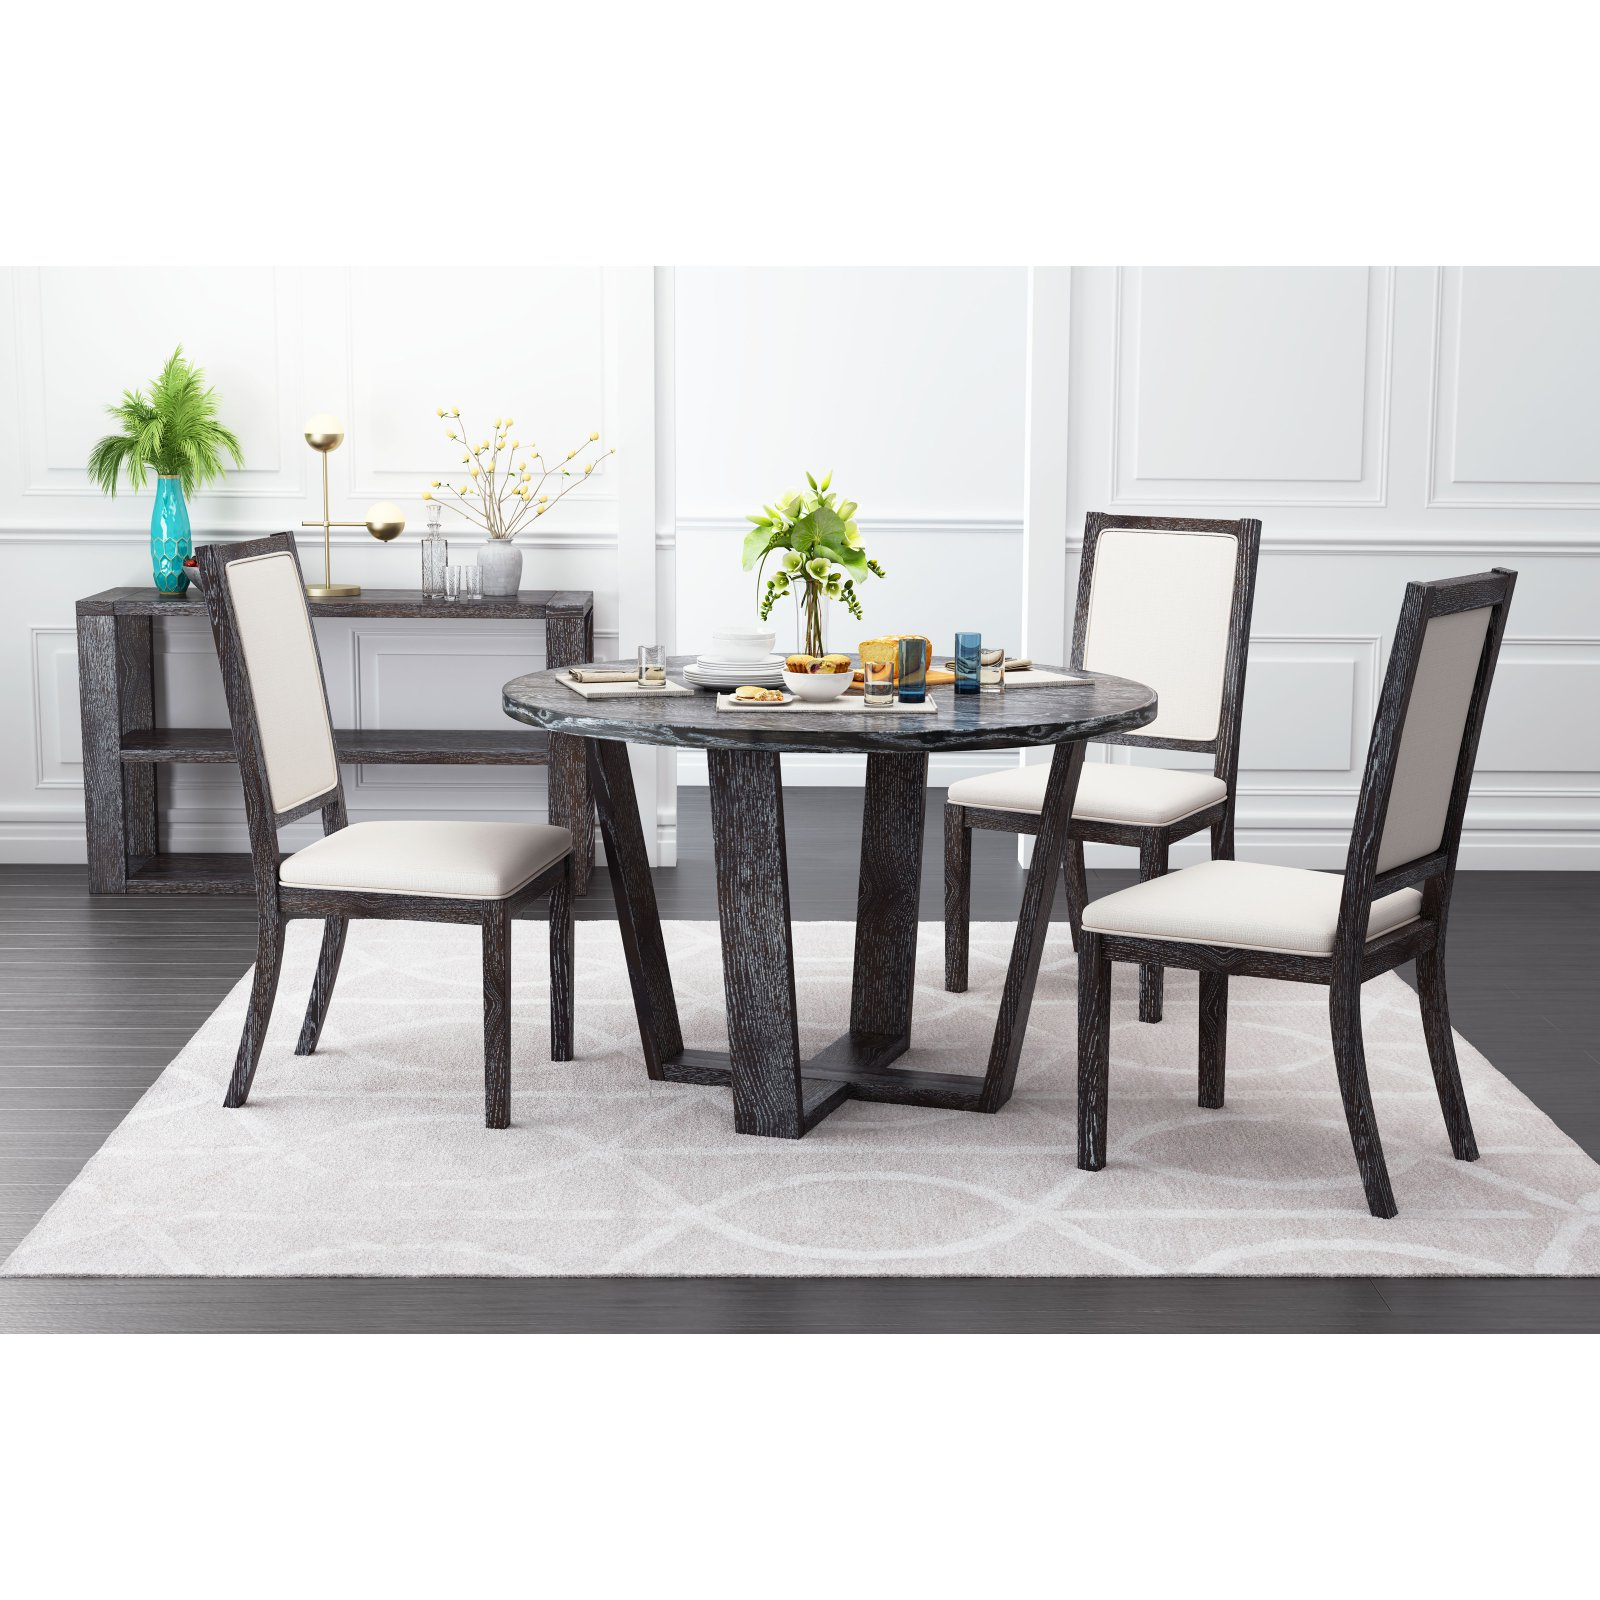 Zuo Modern Contemporary Skyline Round Dining Table